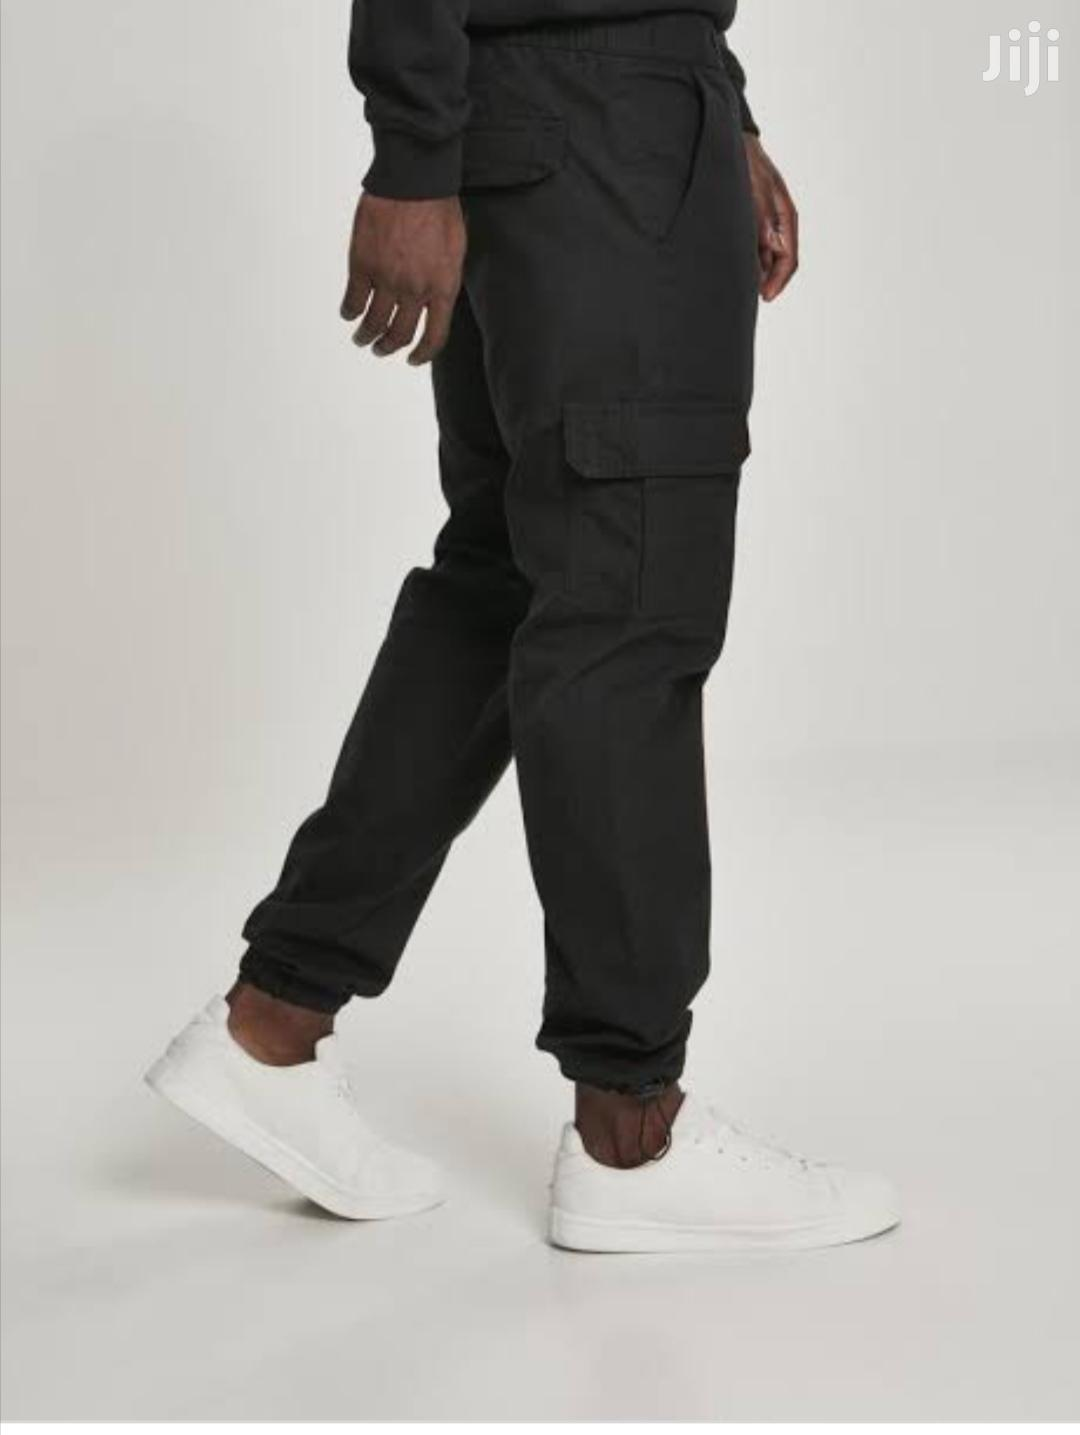 1st Class Cargo Pants   Clothing for sale in Kampala, Central Region, Uganda